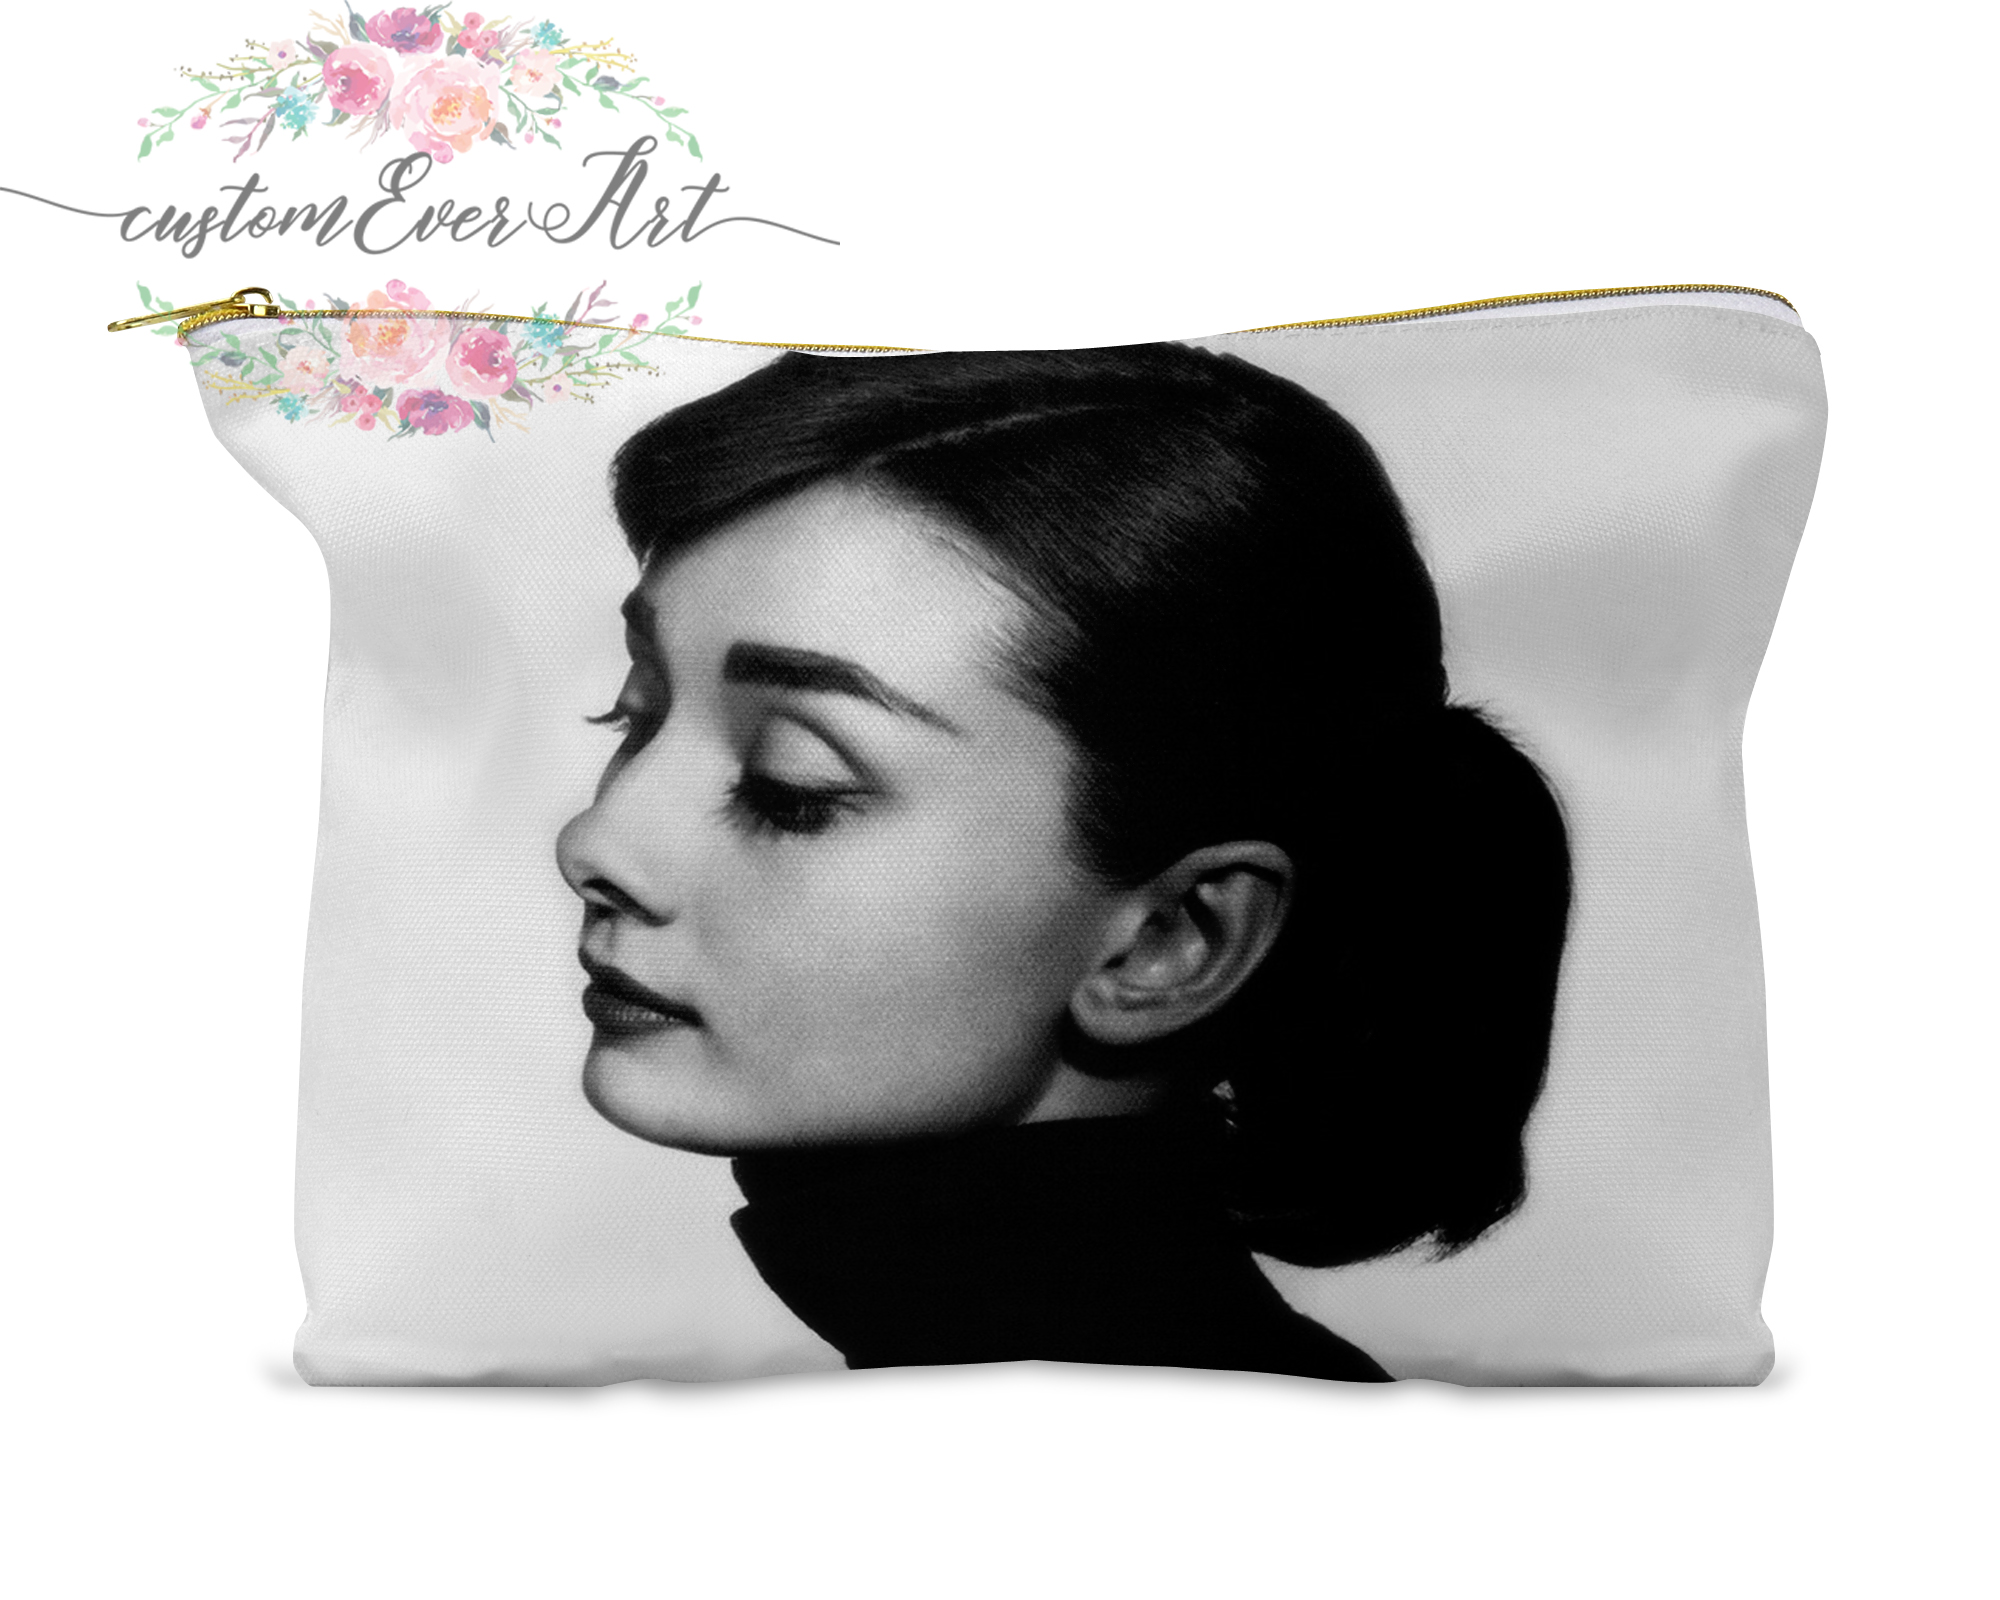 Audrey Hepburn Cosmetic Bag Personalized Small Makeup Bag Funny Makeup Organizer Toiletry Bag Zipper Pouch